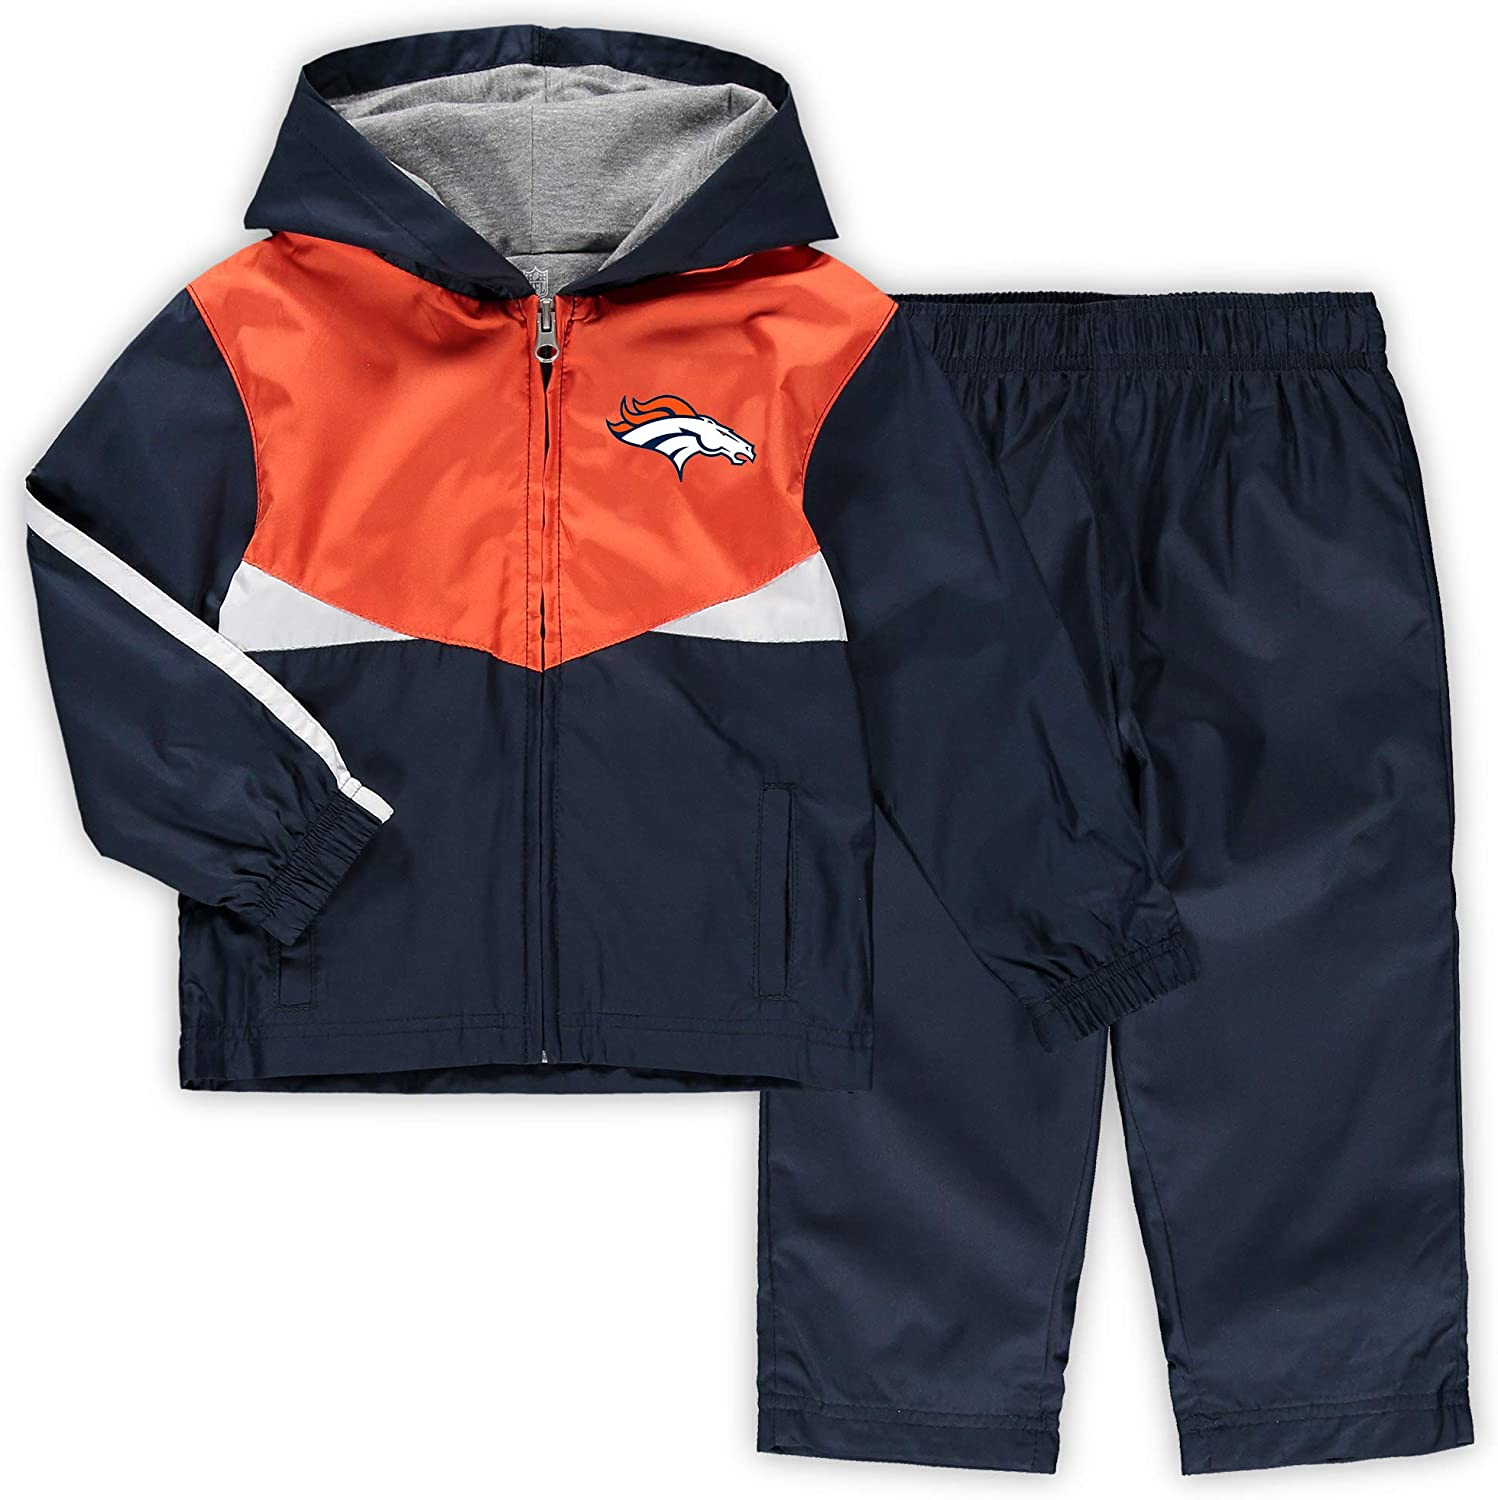 OuterStuff NFL Toddler Full Zip Jackets and Pants Wind Suit 2 Piece Set